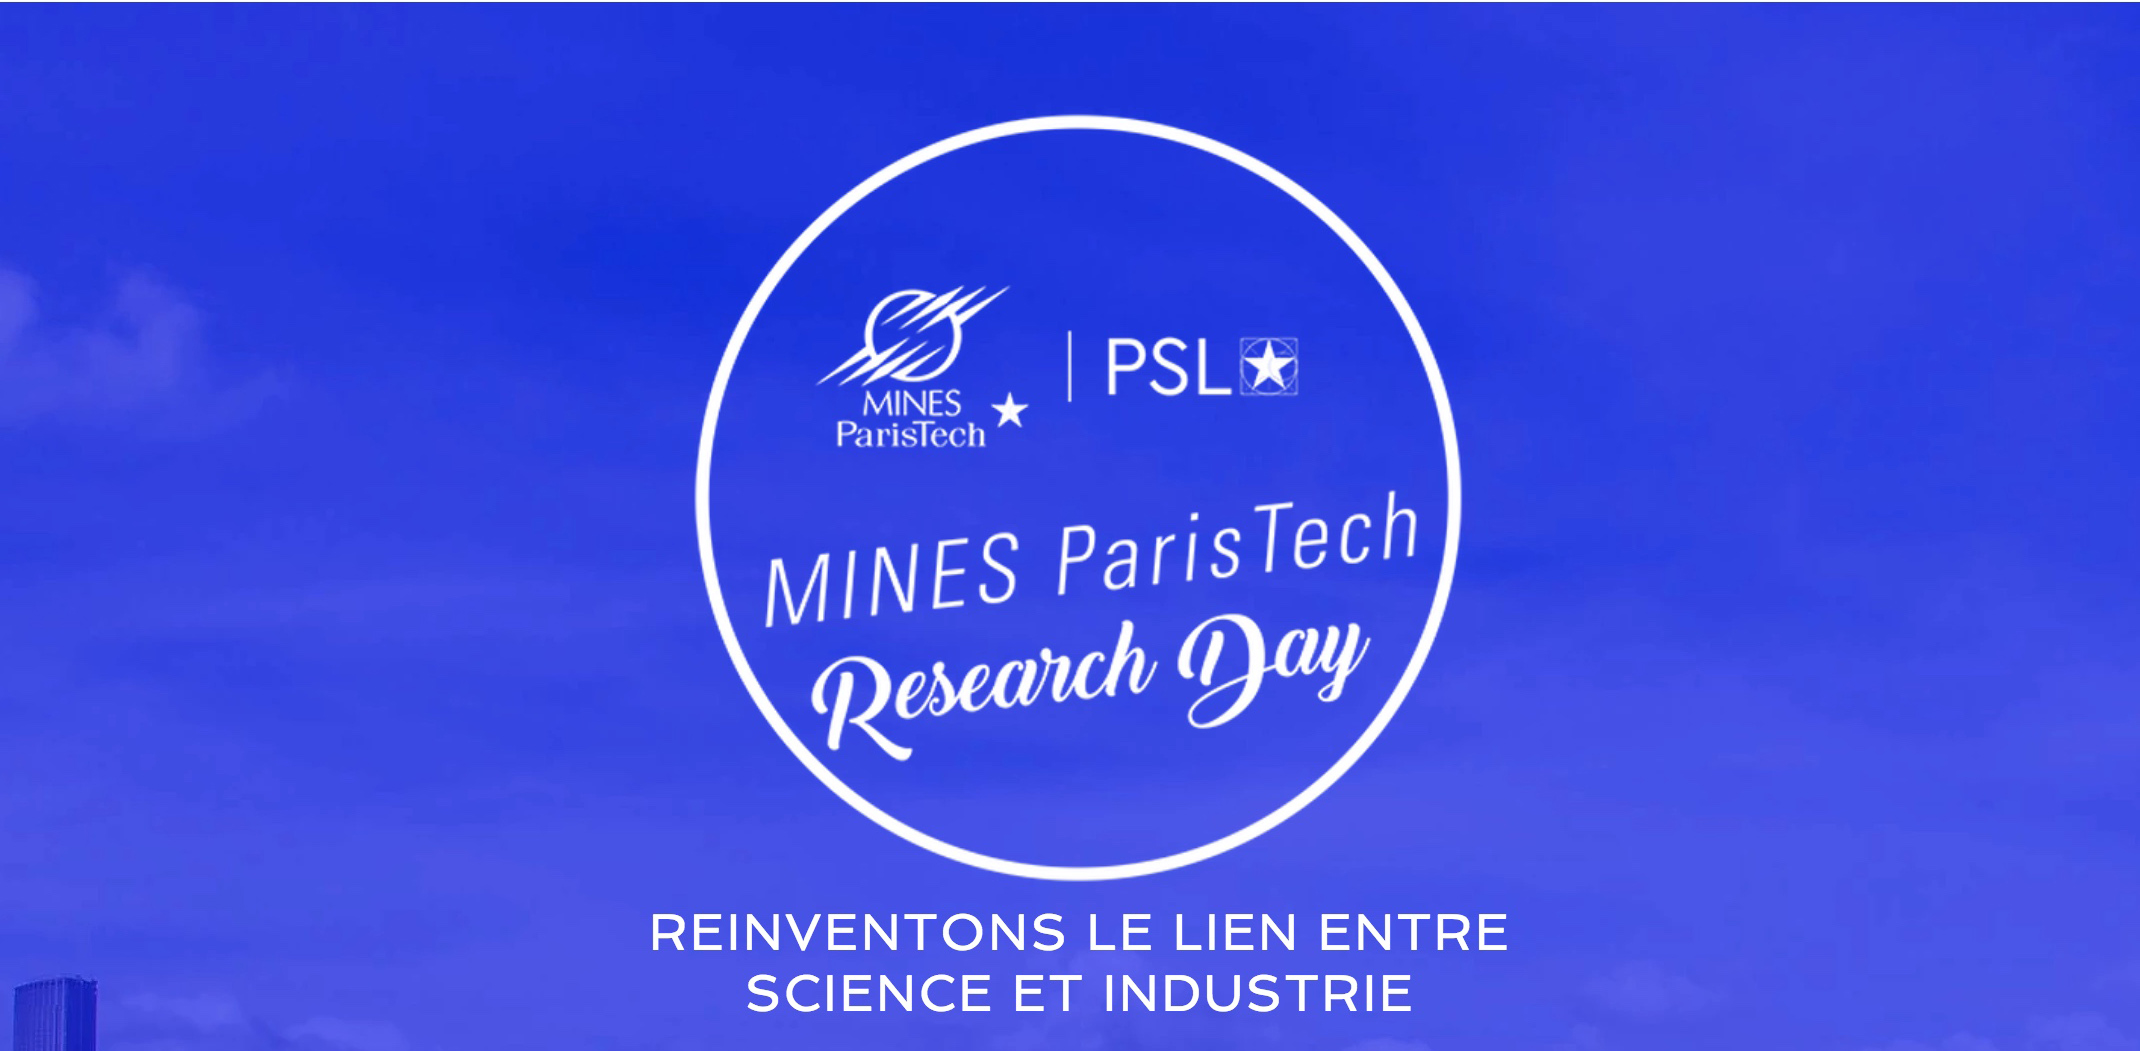 MINES ParisTech Research Day 2021